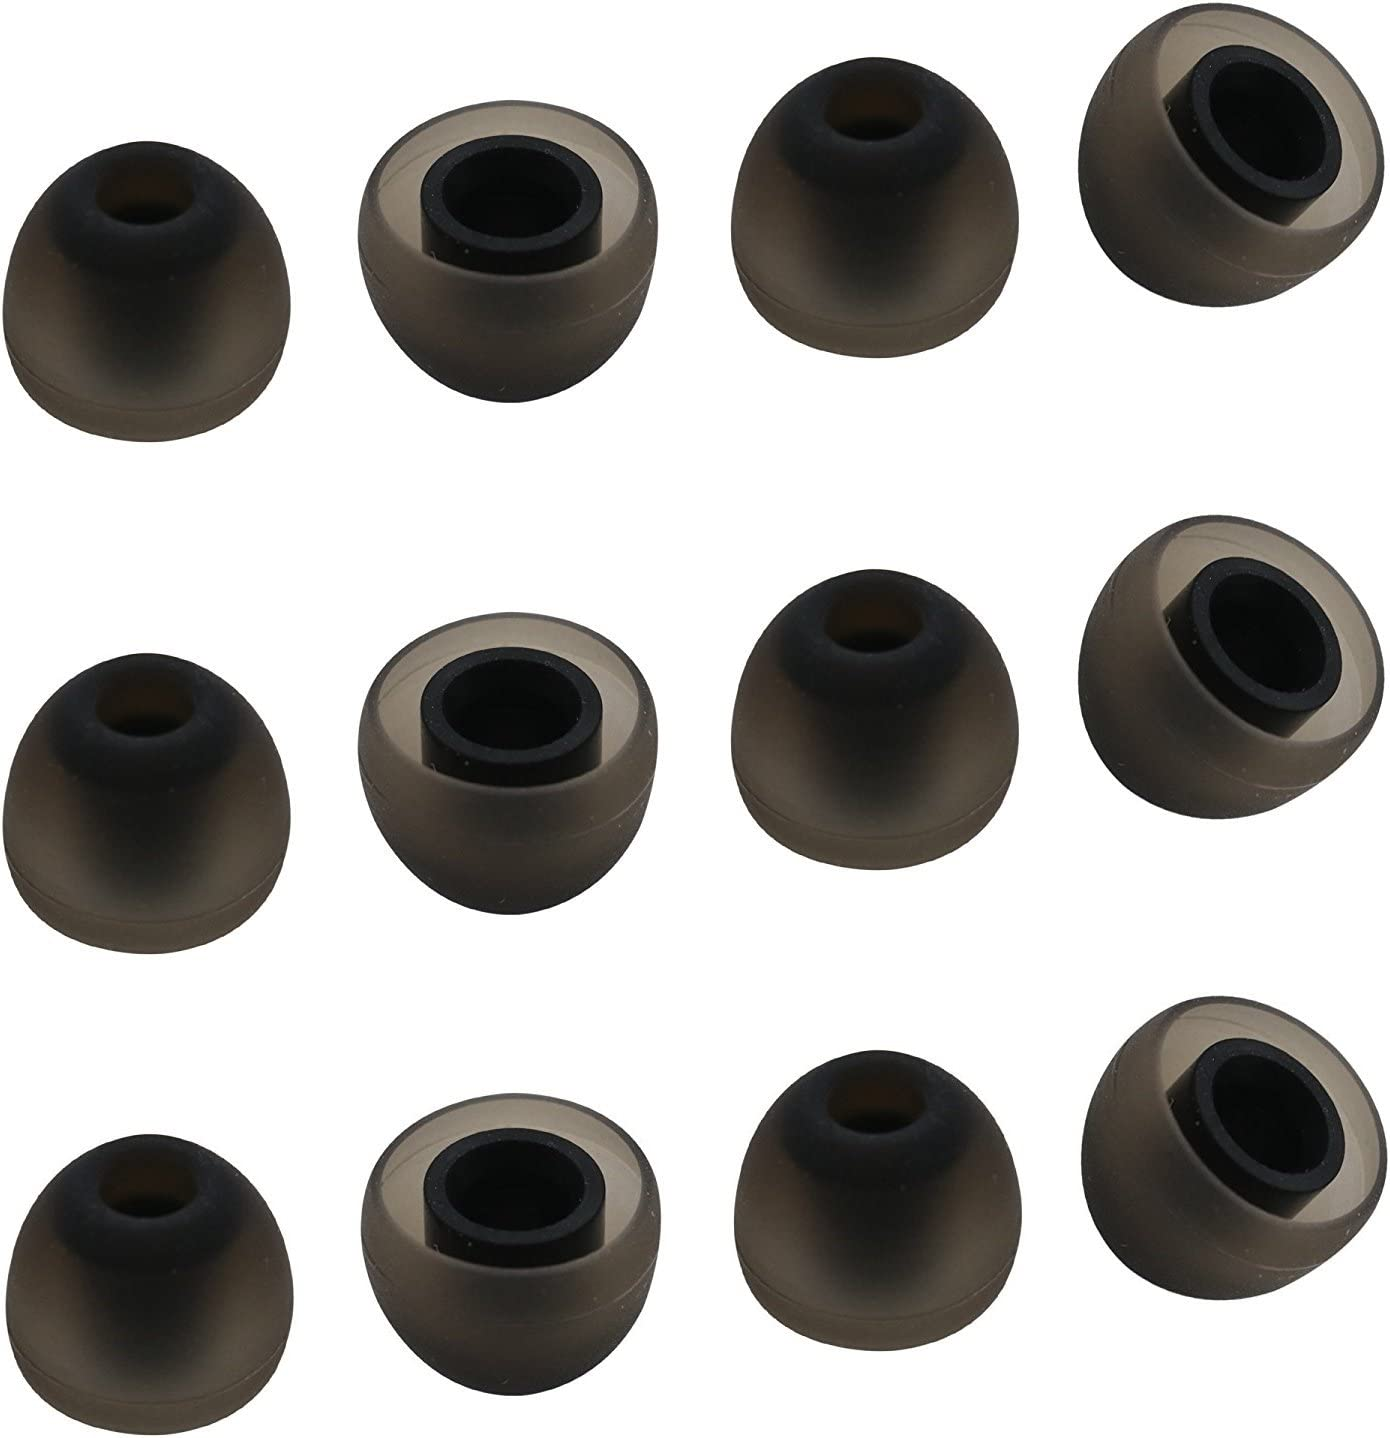 Fit for Jaybird X3 Foam Upgraded Memory Foam Earbud Tips 3 Pairs Medium Size ALXCD Replacement Foam Ear Tips for Jaybird X3 M